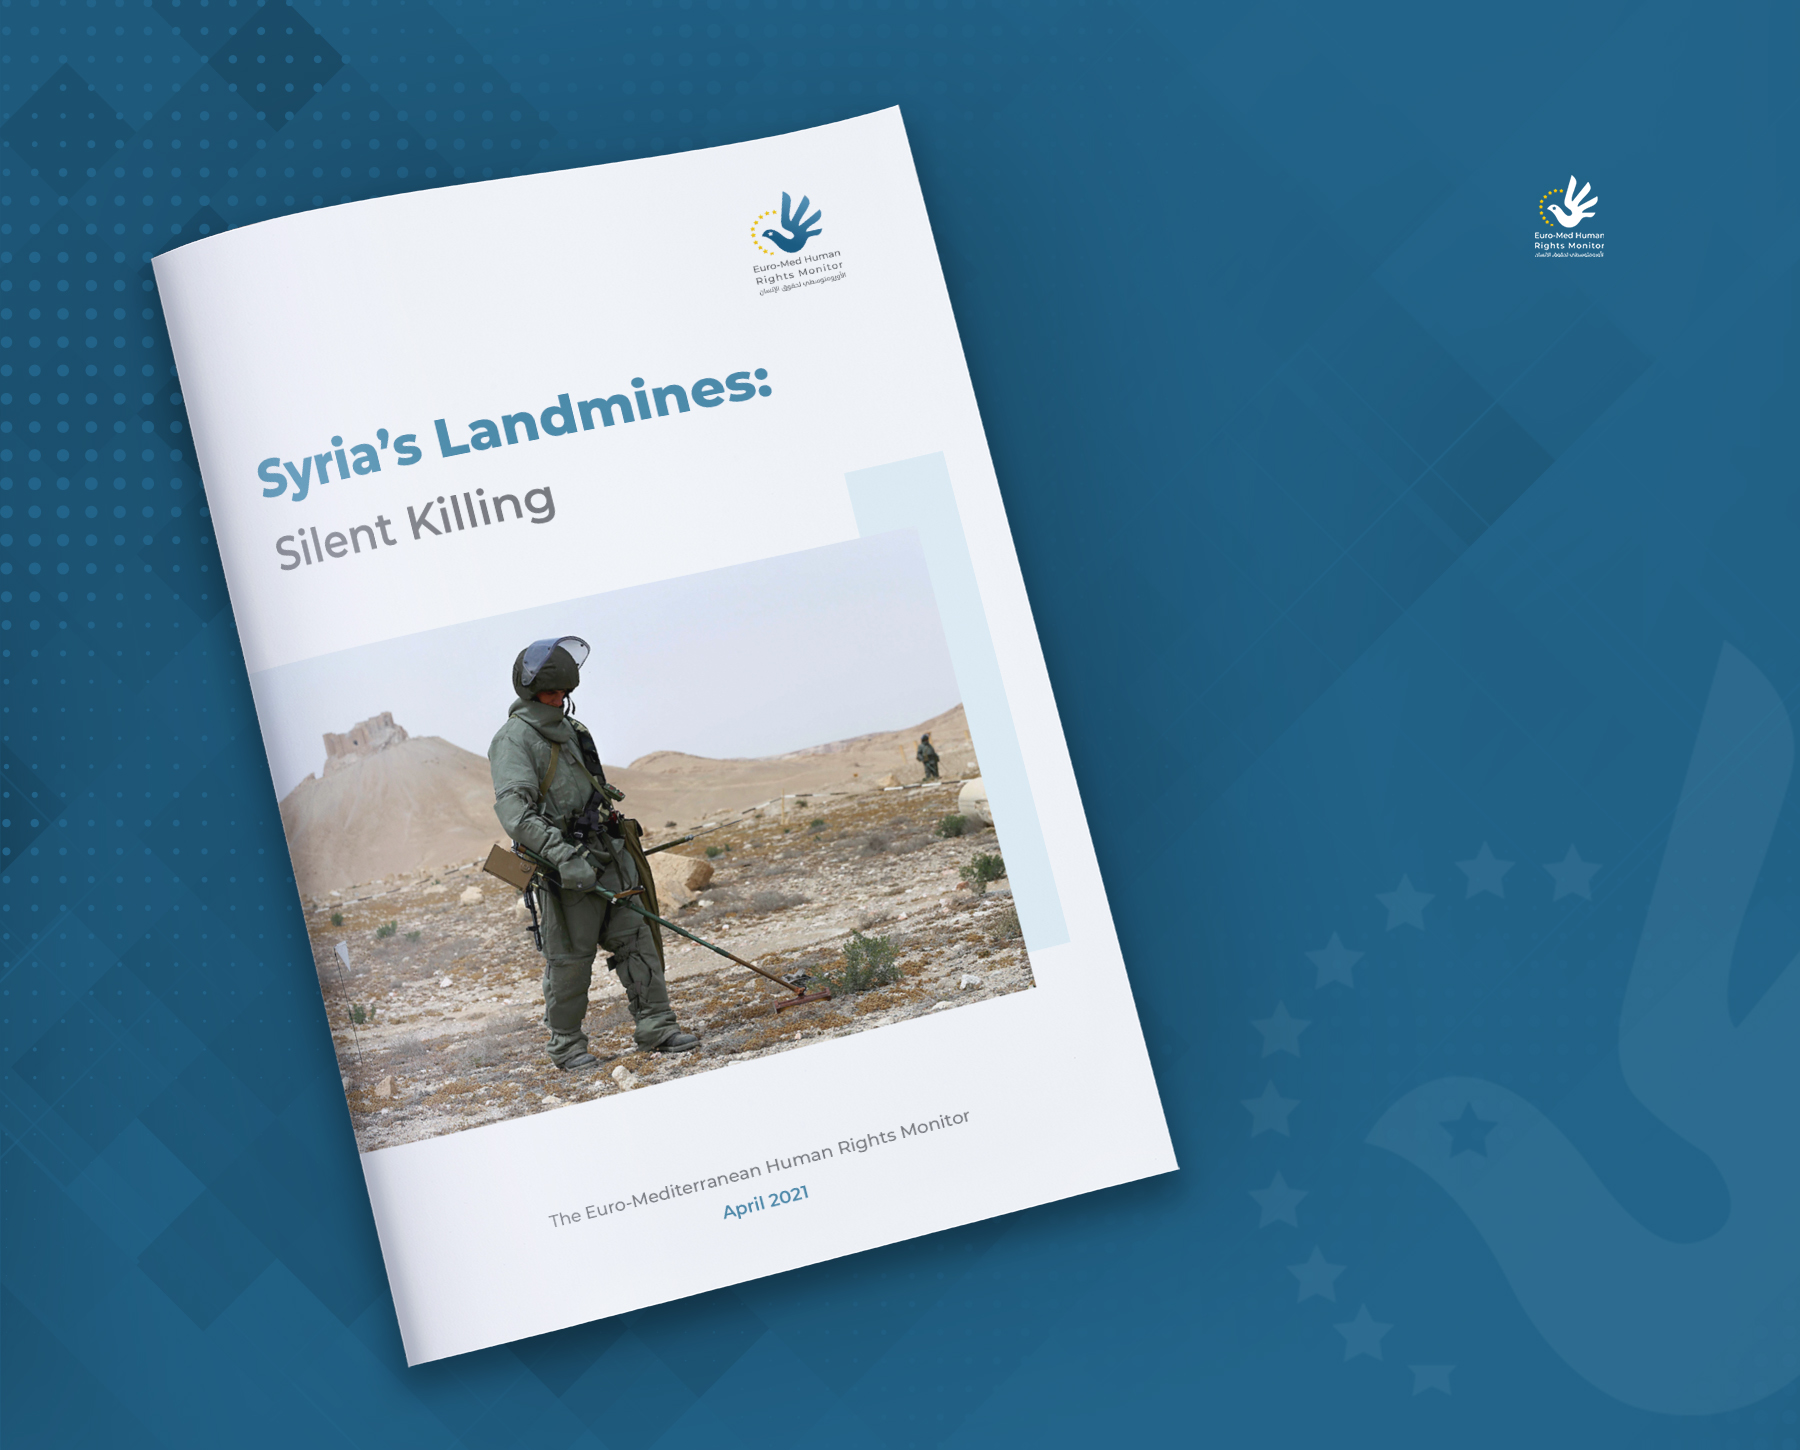 New report: Incidents and victims of landmine explosions in Syria increased despite military operations eased